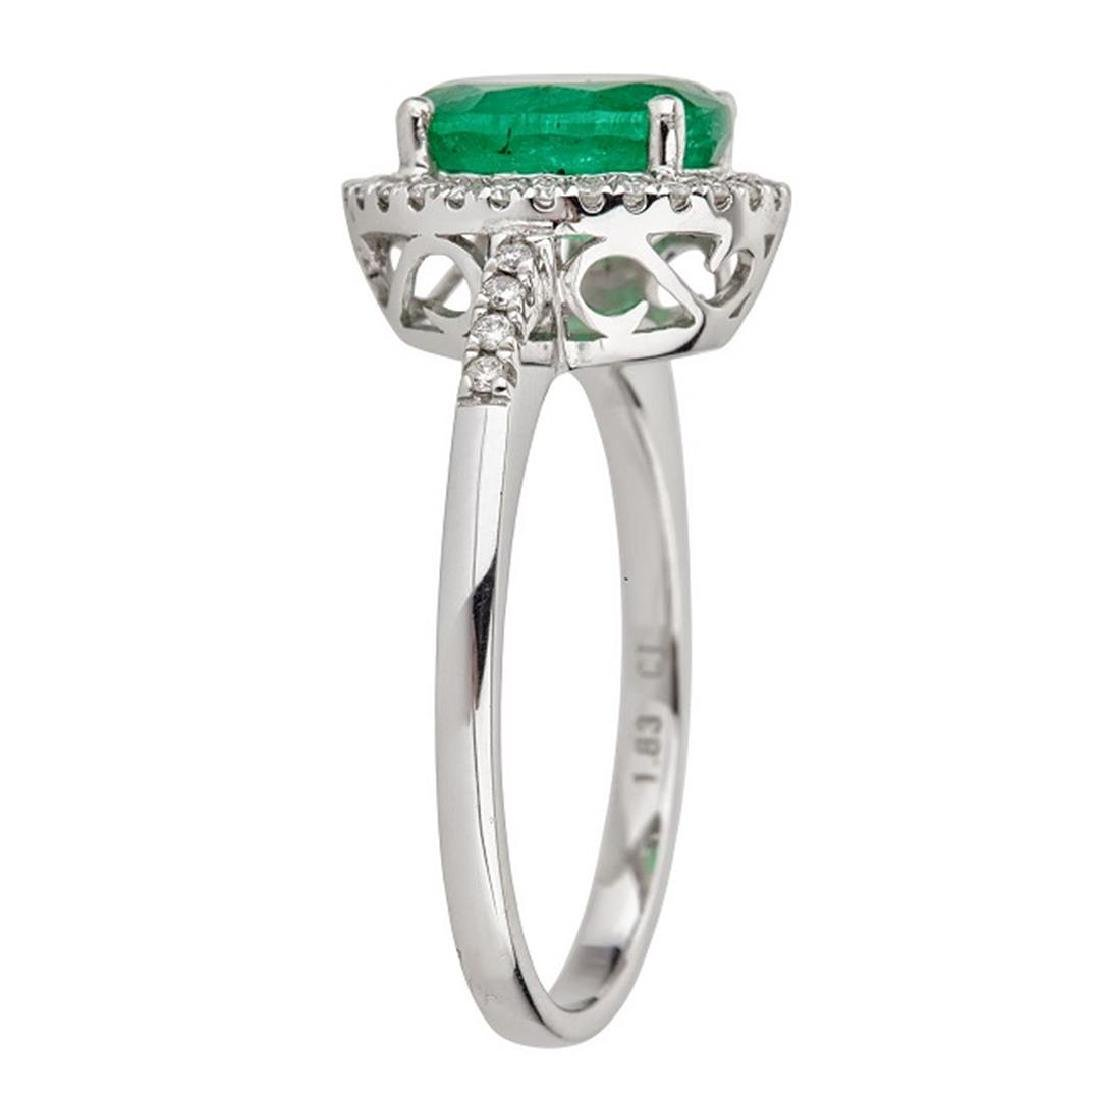 1.83 ctw Emerald and Diamond Ring - 14KT White Gold - 2